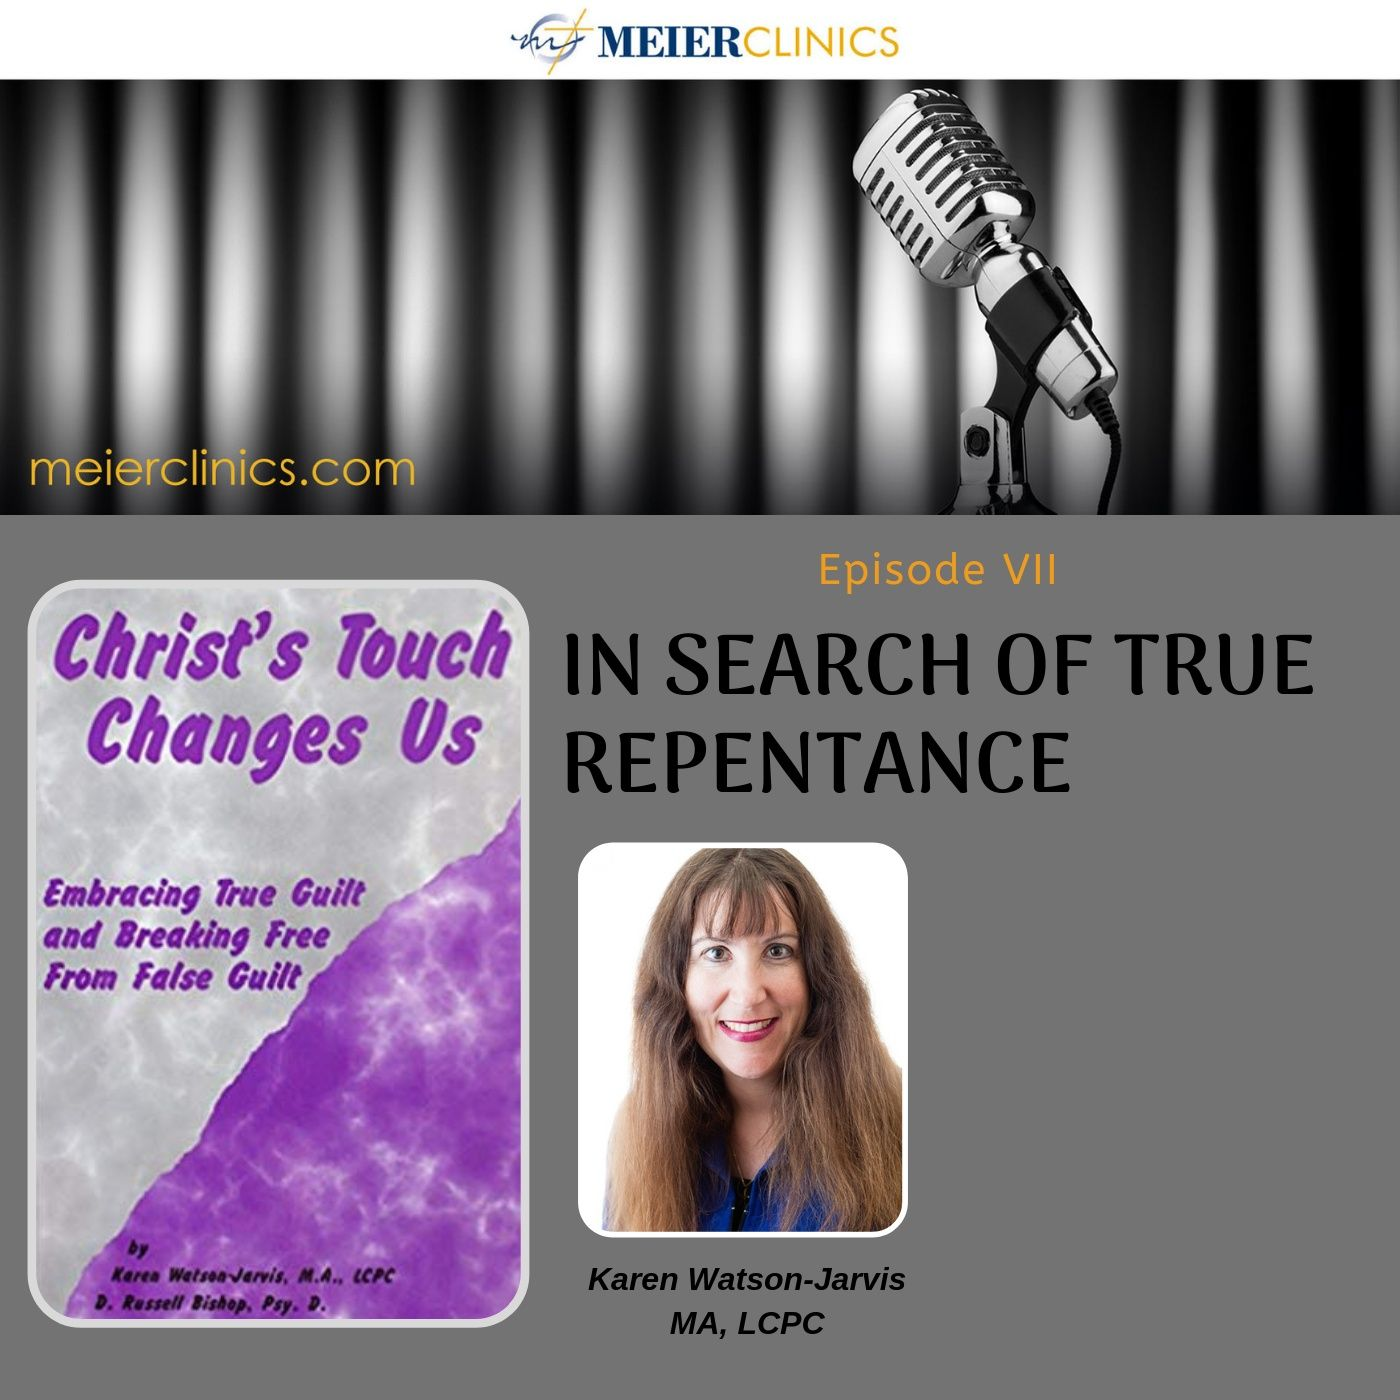 In Search of True Repentance